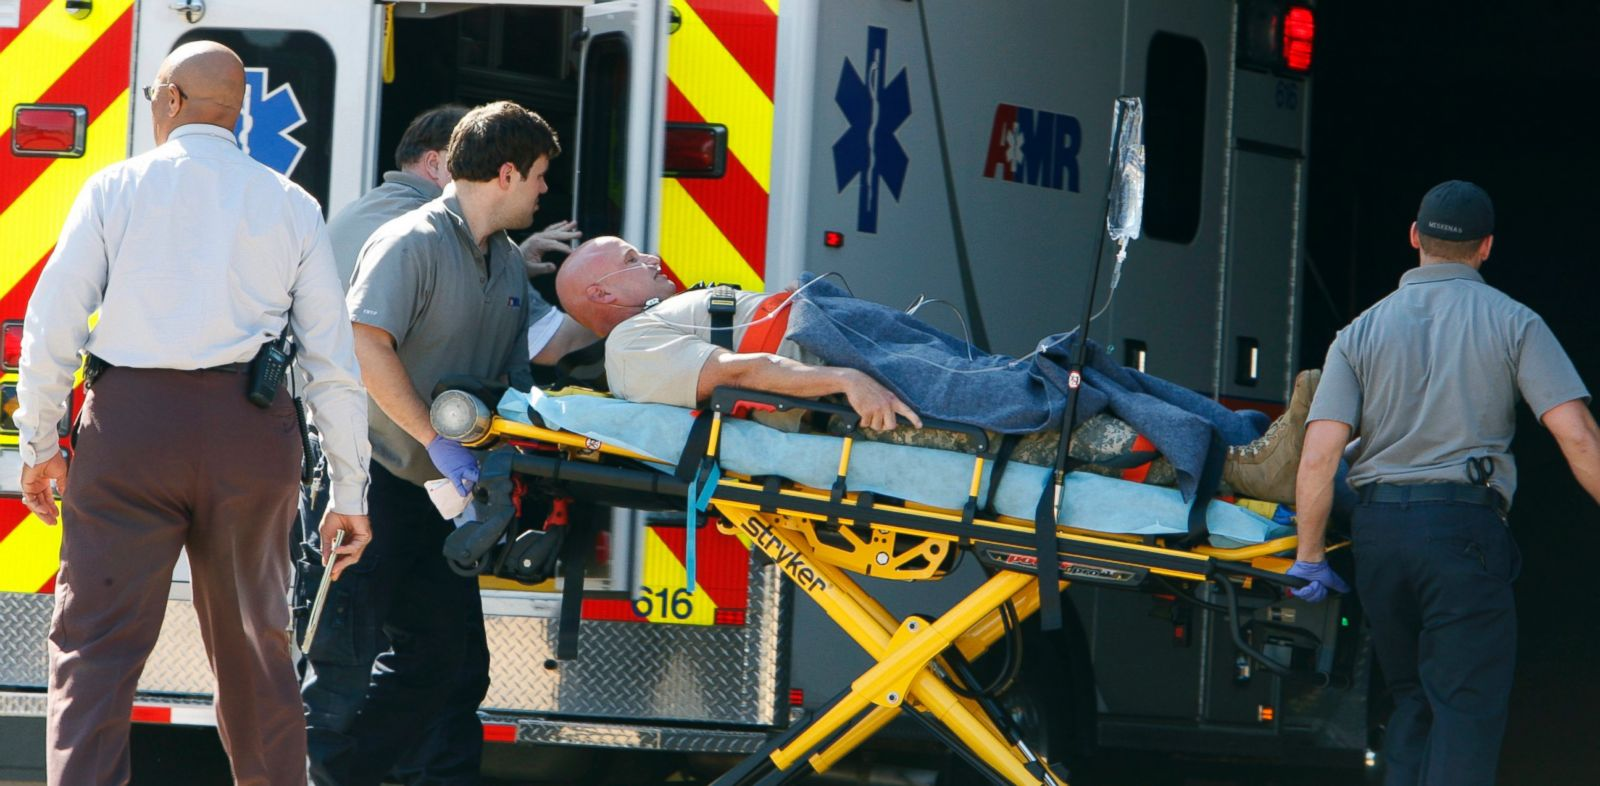 PHOTO: A patient believed to be one of the National Guardsmen injured near the naval base in Millington, Tenn., was taken to The Med in Memphis, Tenn. on Oct. 24, 2013.